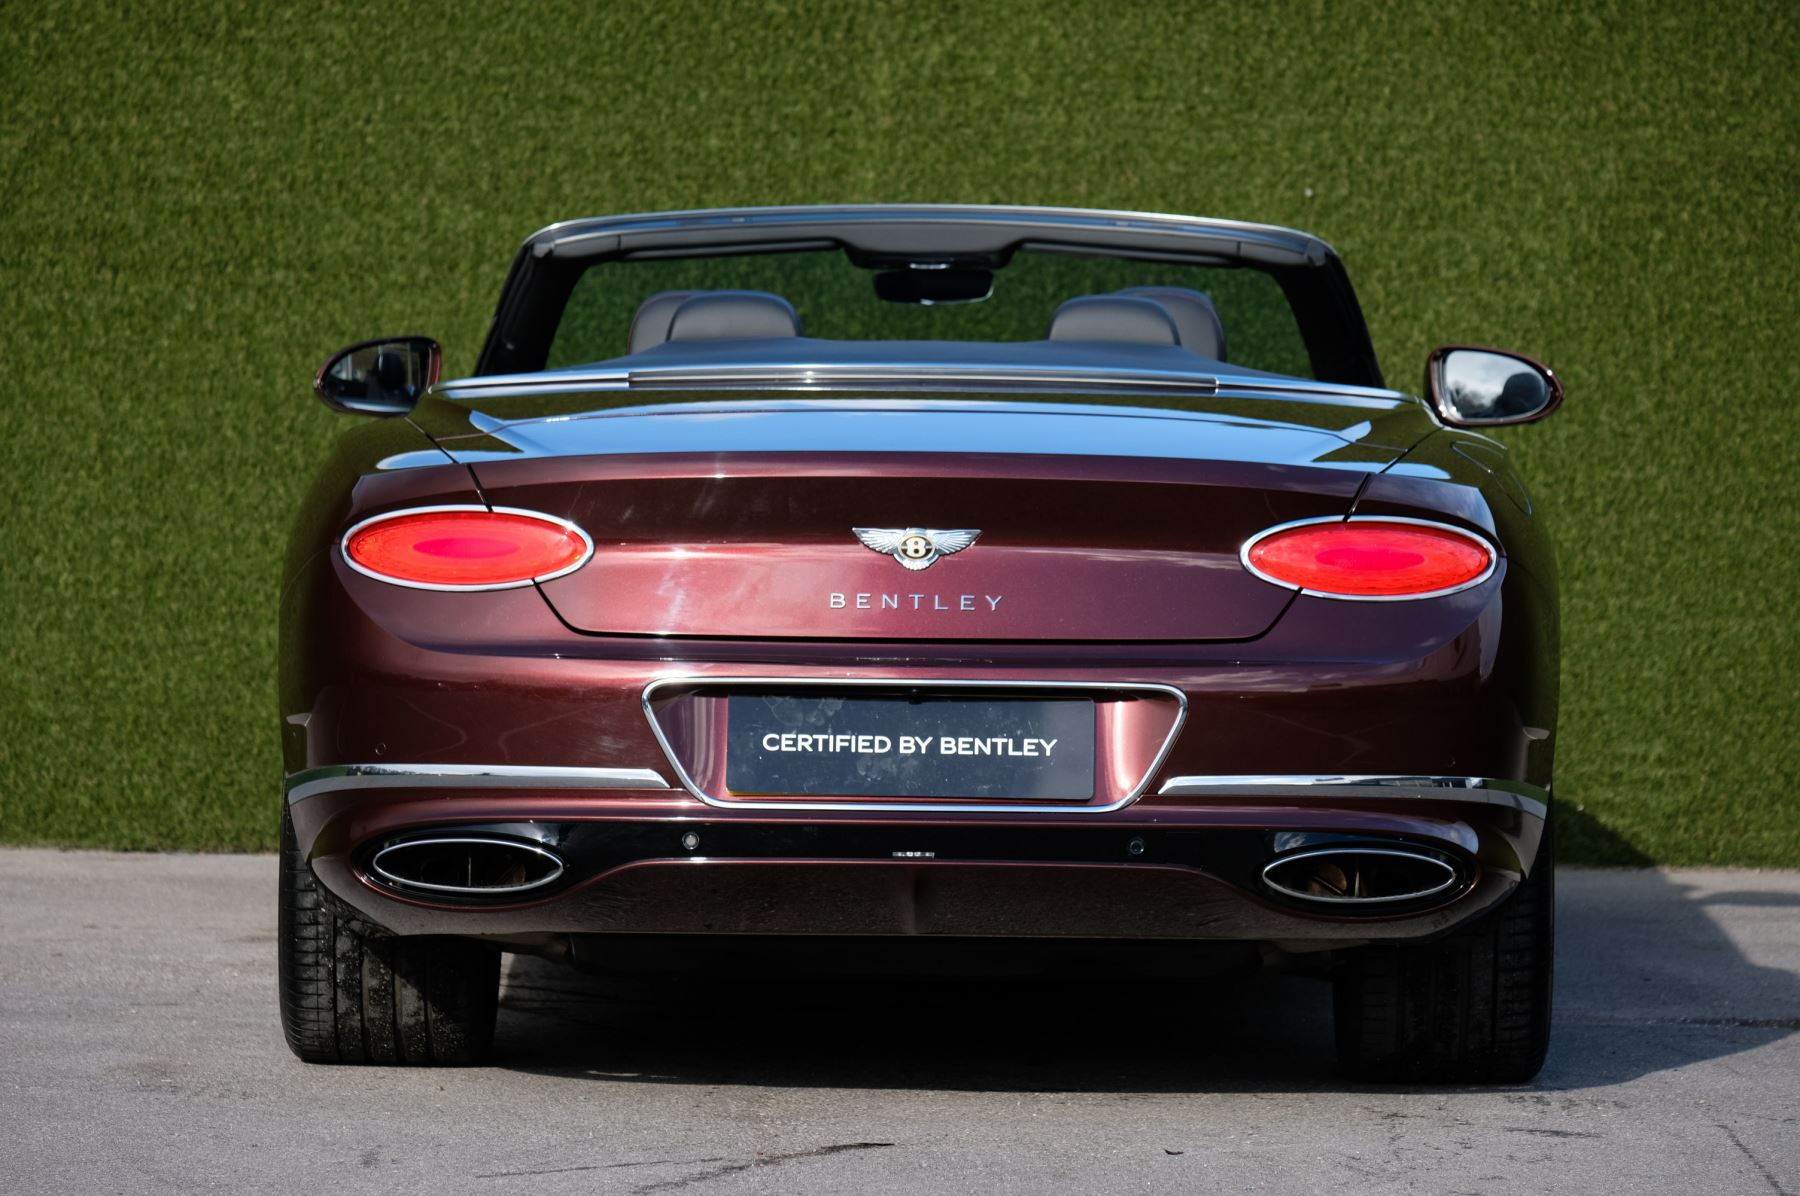 Bentley Continental GTC 6.0 W12 - First Edition Specification image 4